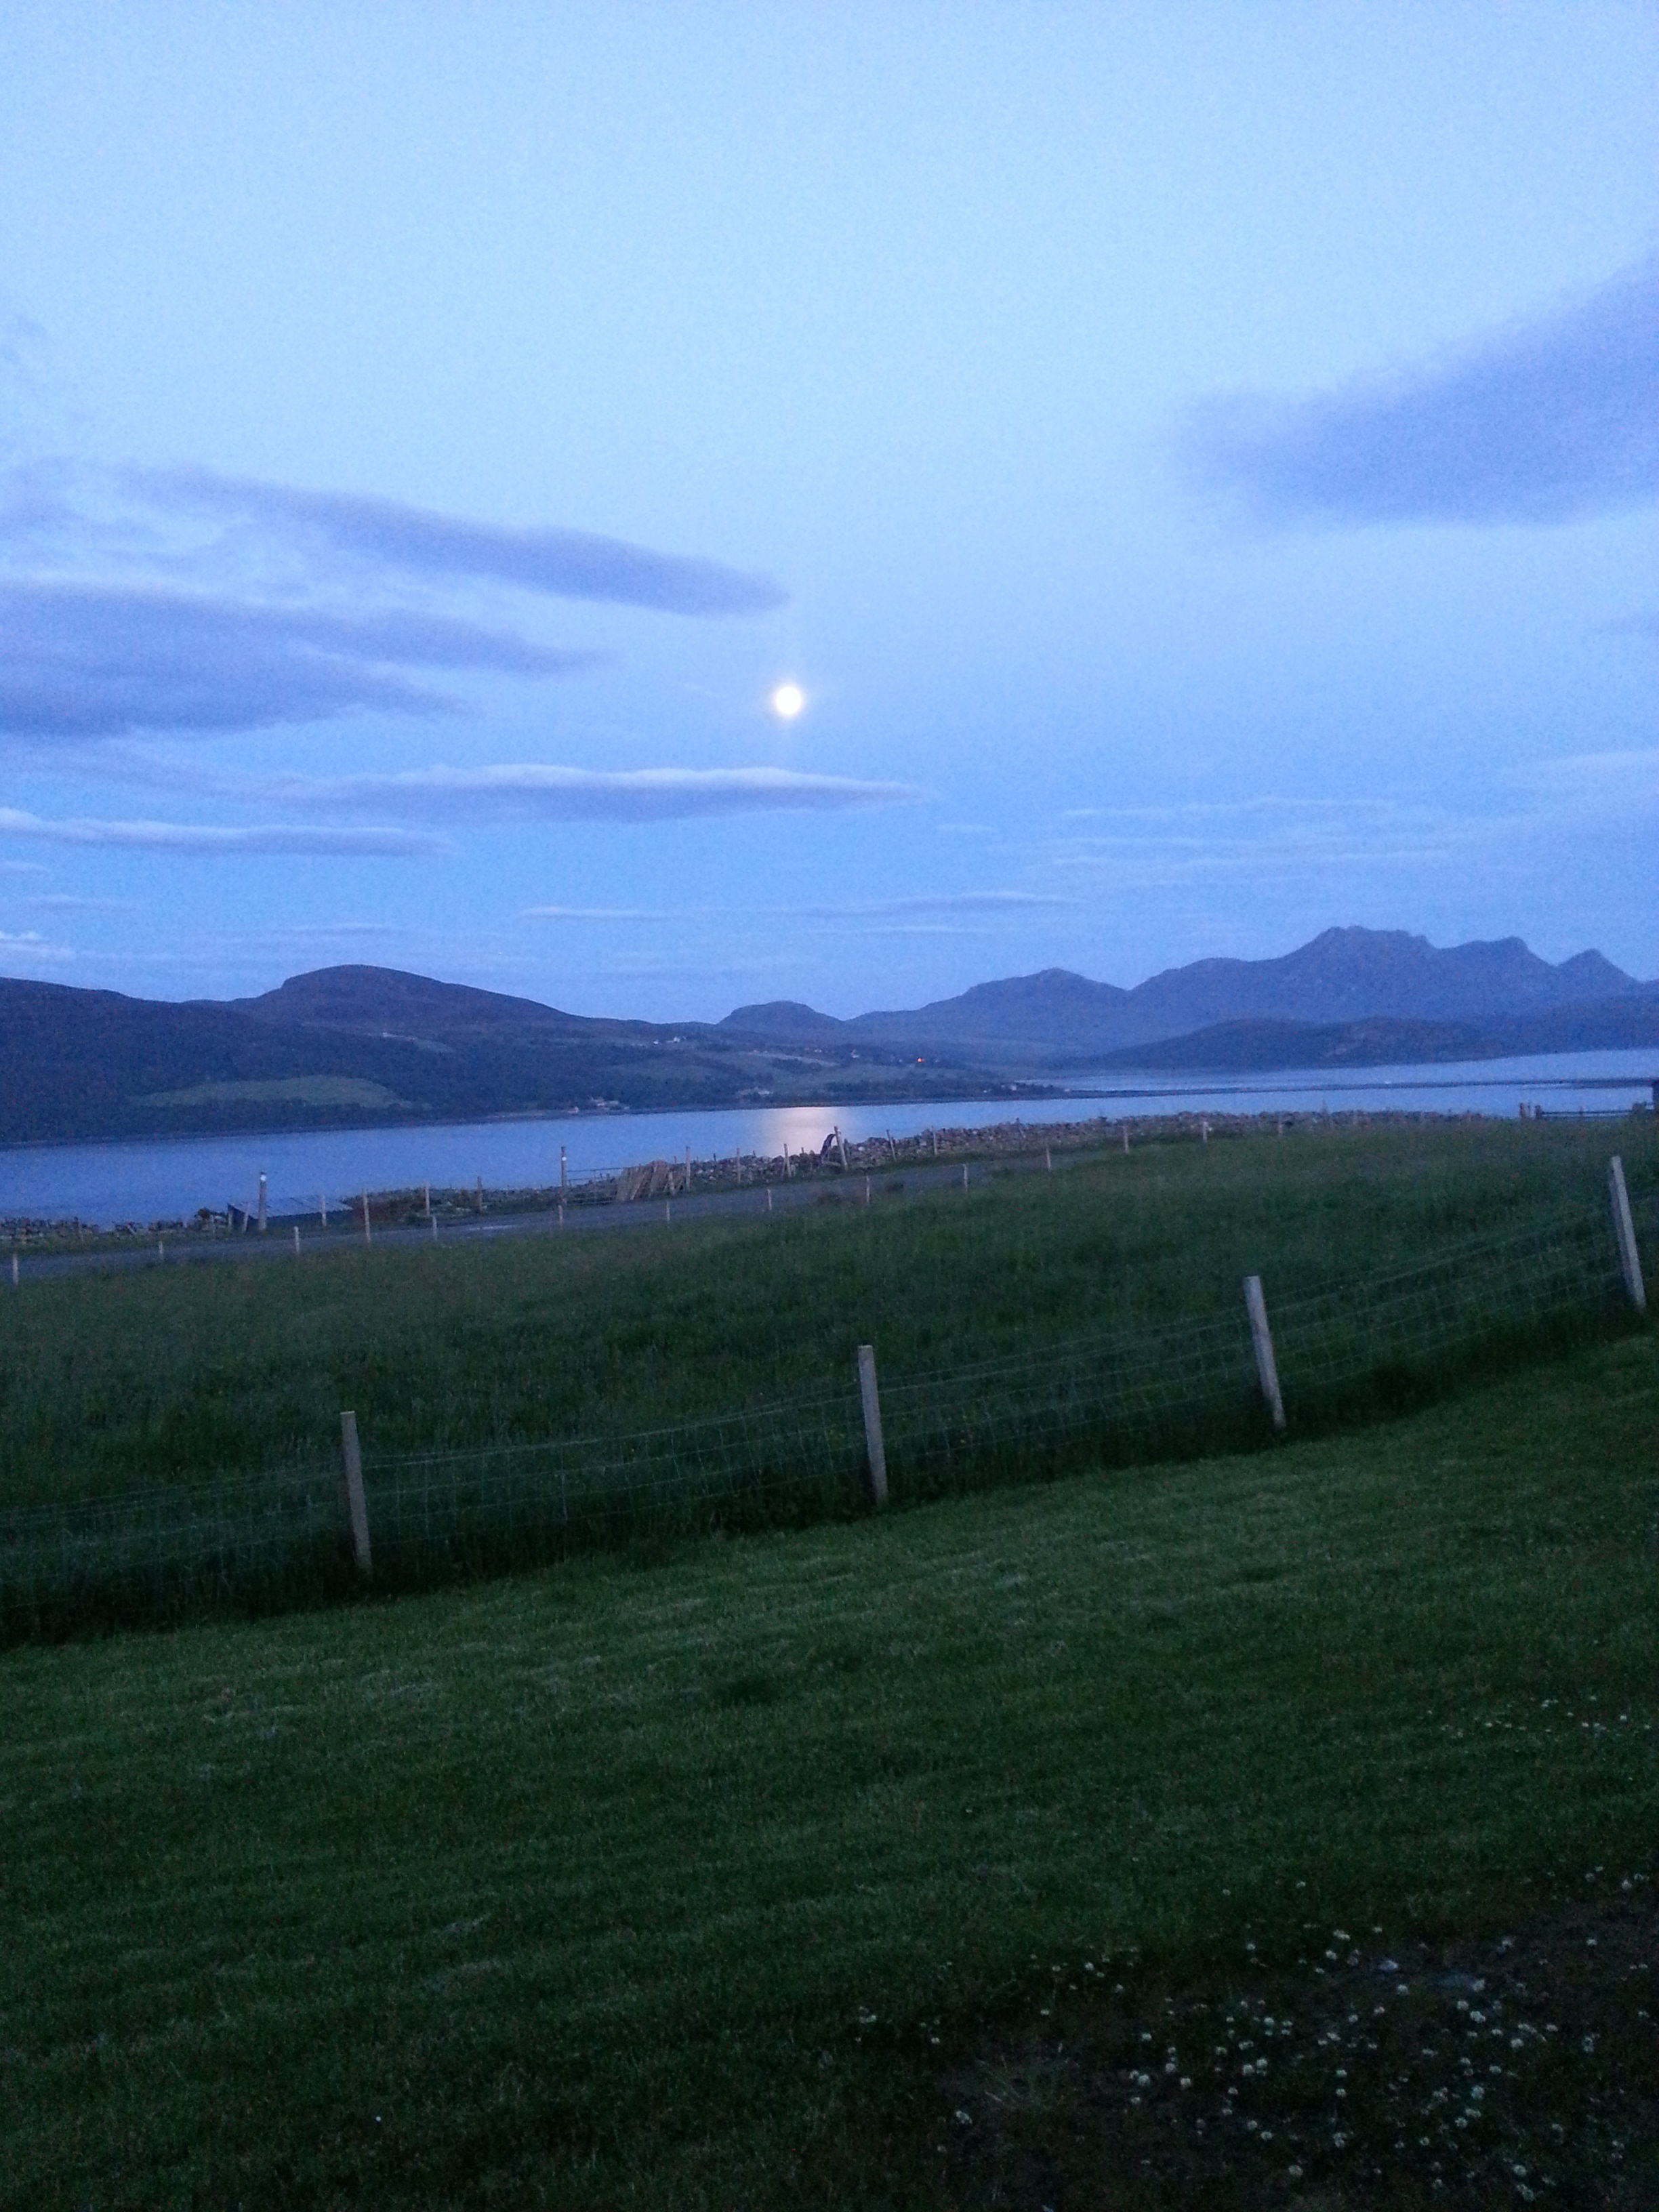 Moon over the Kyle of Tongue